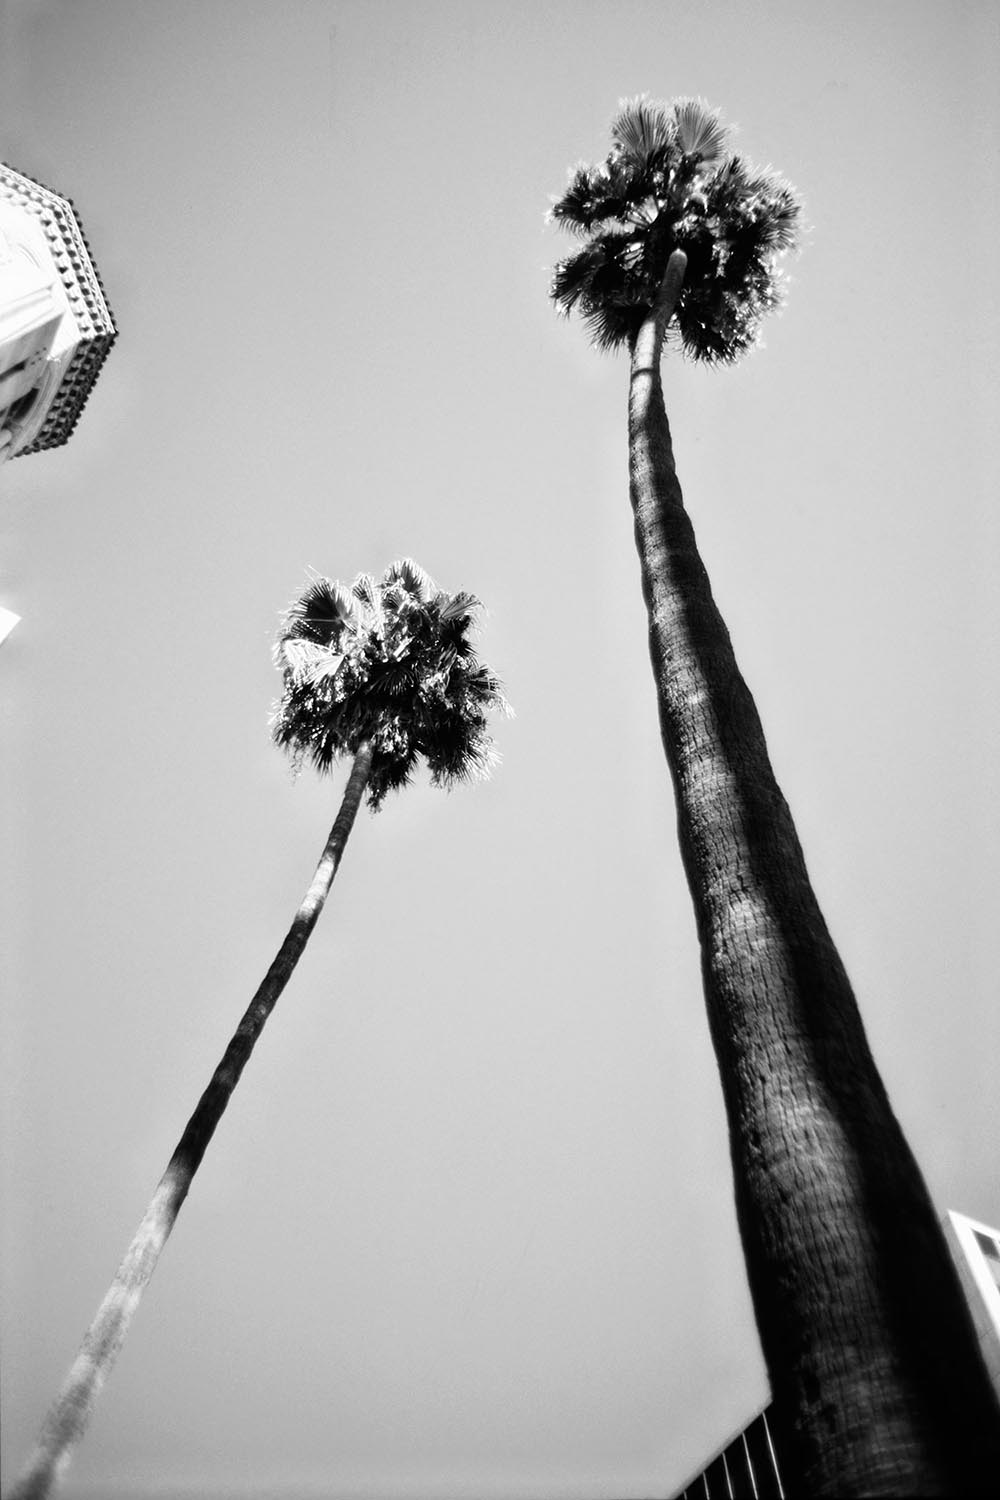 Black and white photograph of two tall palm trees in Los Angeles.